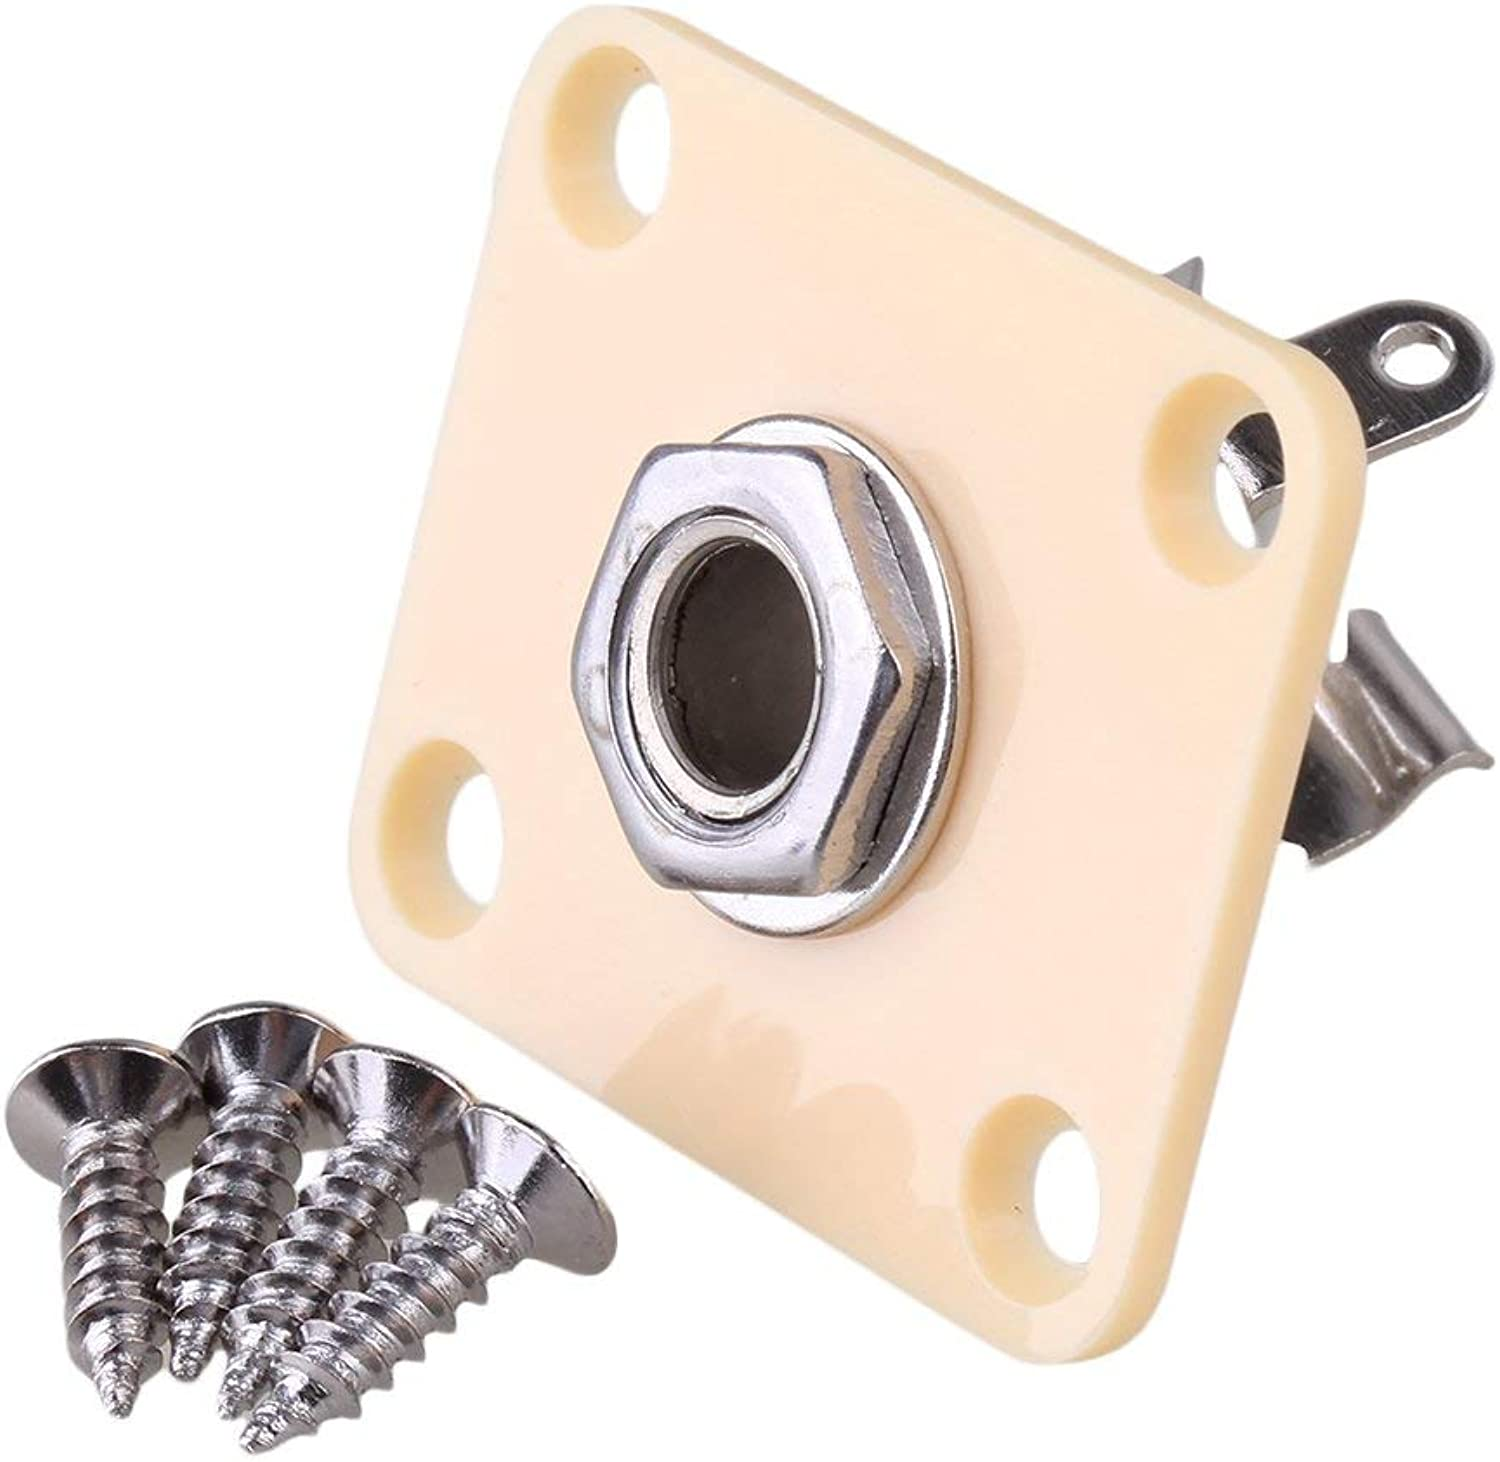 Yibuy CreamyWhite Plastic Rectangular Output Jack Plate & Screws for Guitar Replacement Parts